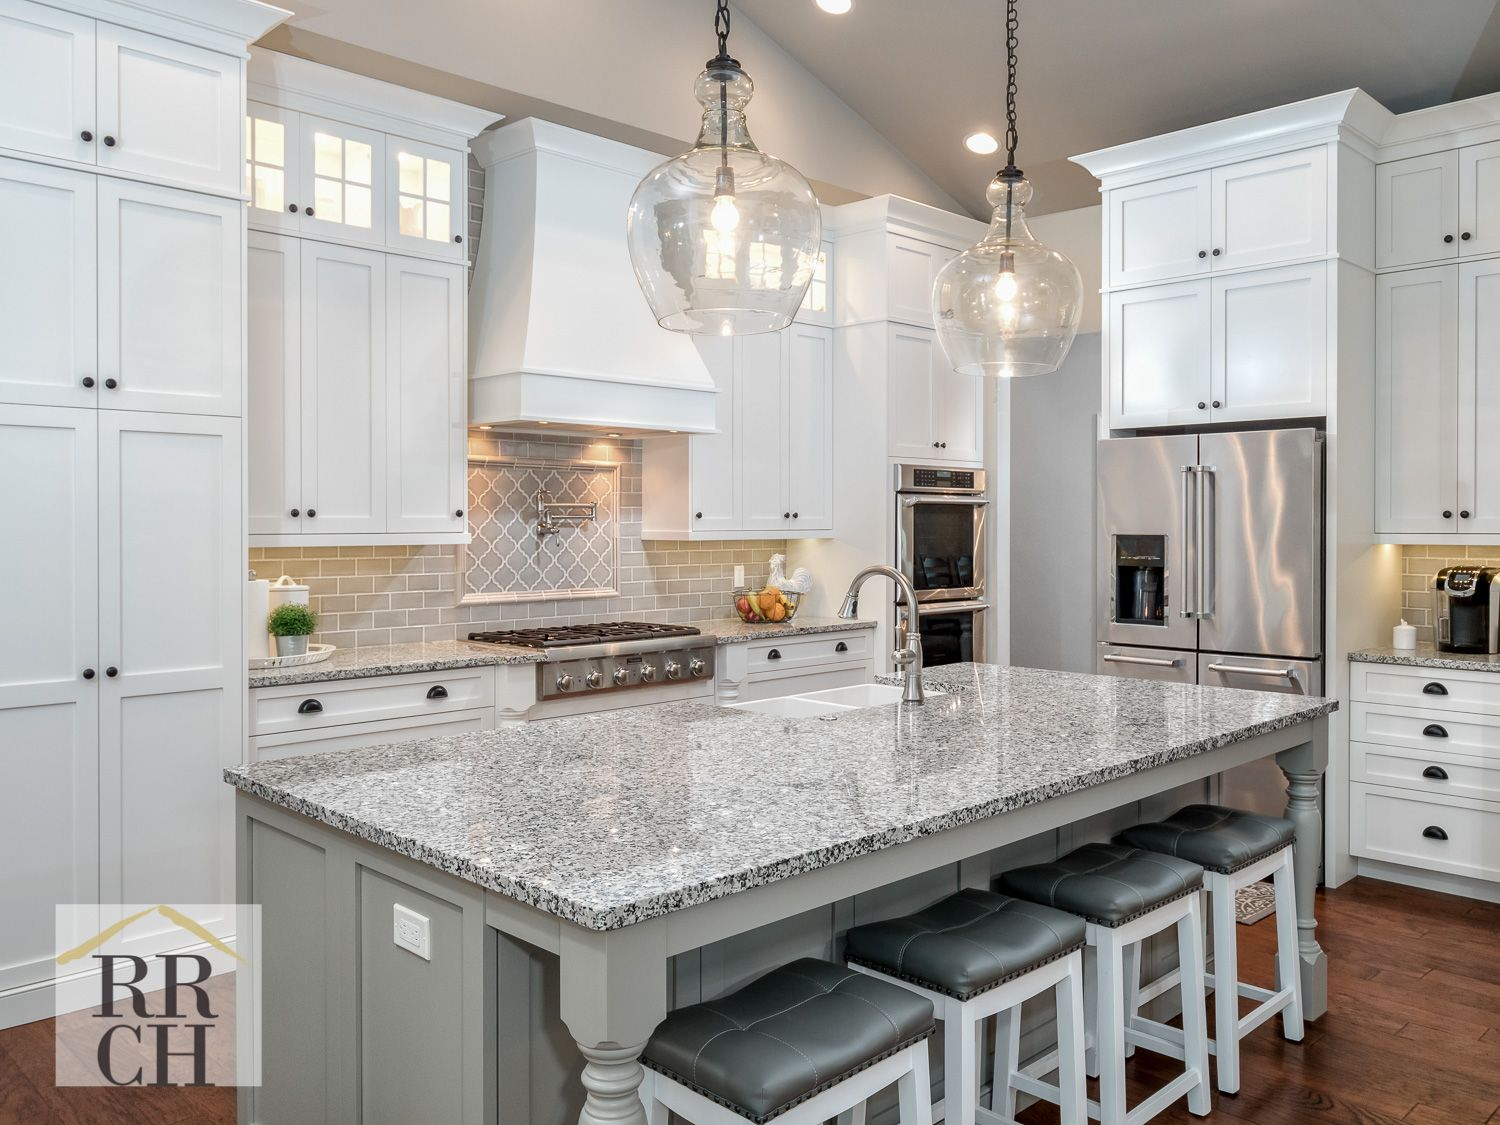 White And Gray Custom Kitchen Cabinets And Thermador Appliances Hickory Wood Floors In Chestnut Color Custom Kitchen Cabinets Hickory Wood Floors Repose Gray